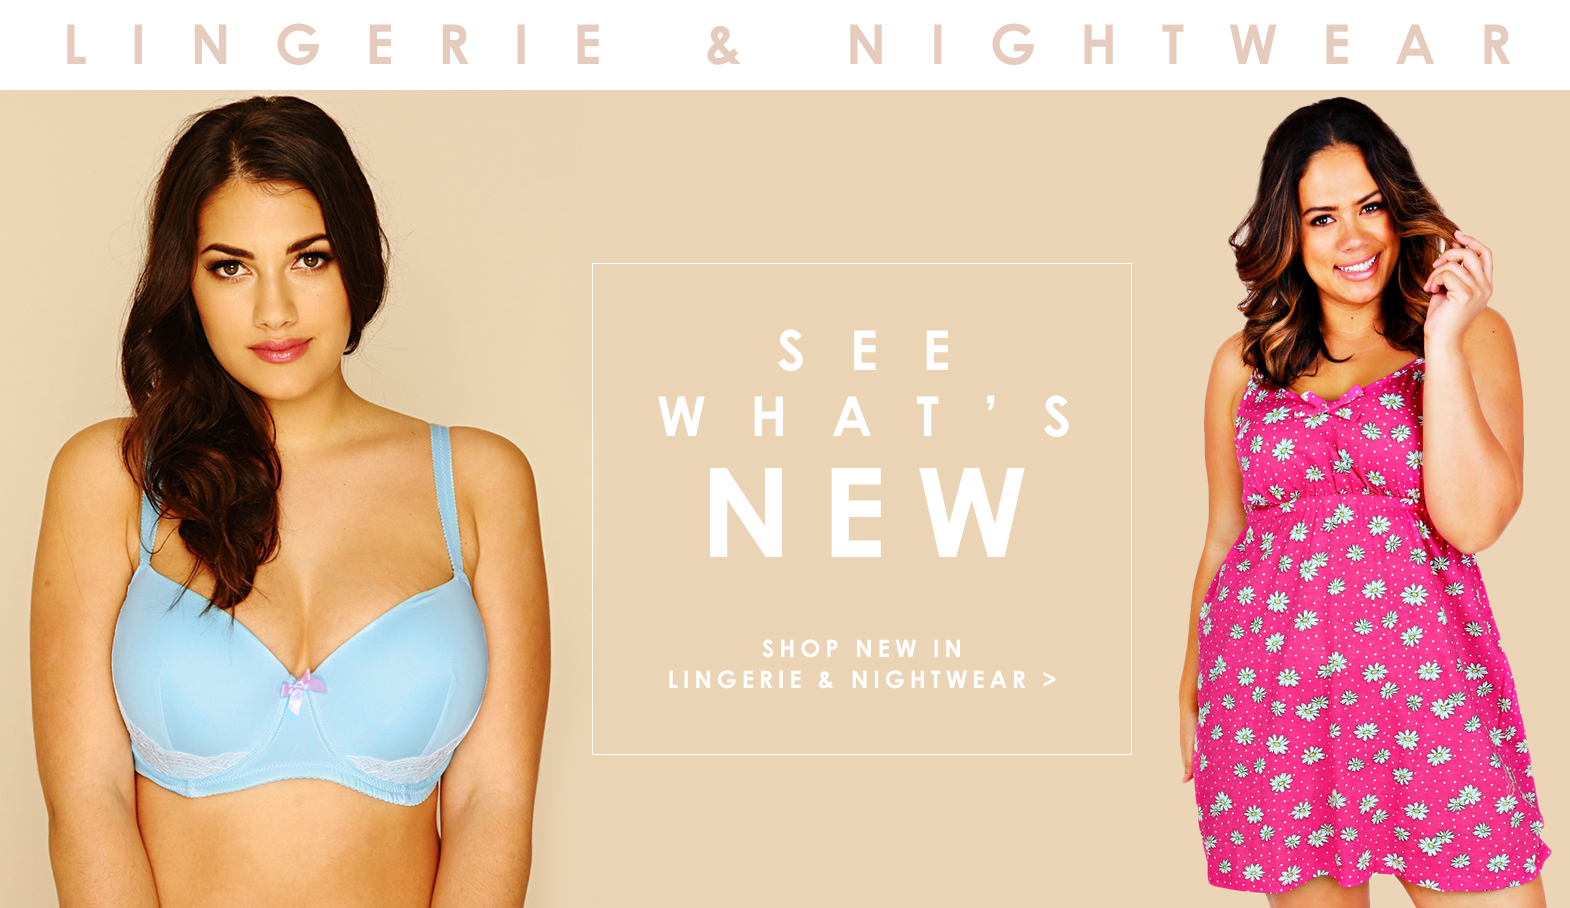 Shop New In Lingerie & Nightwear